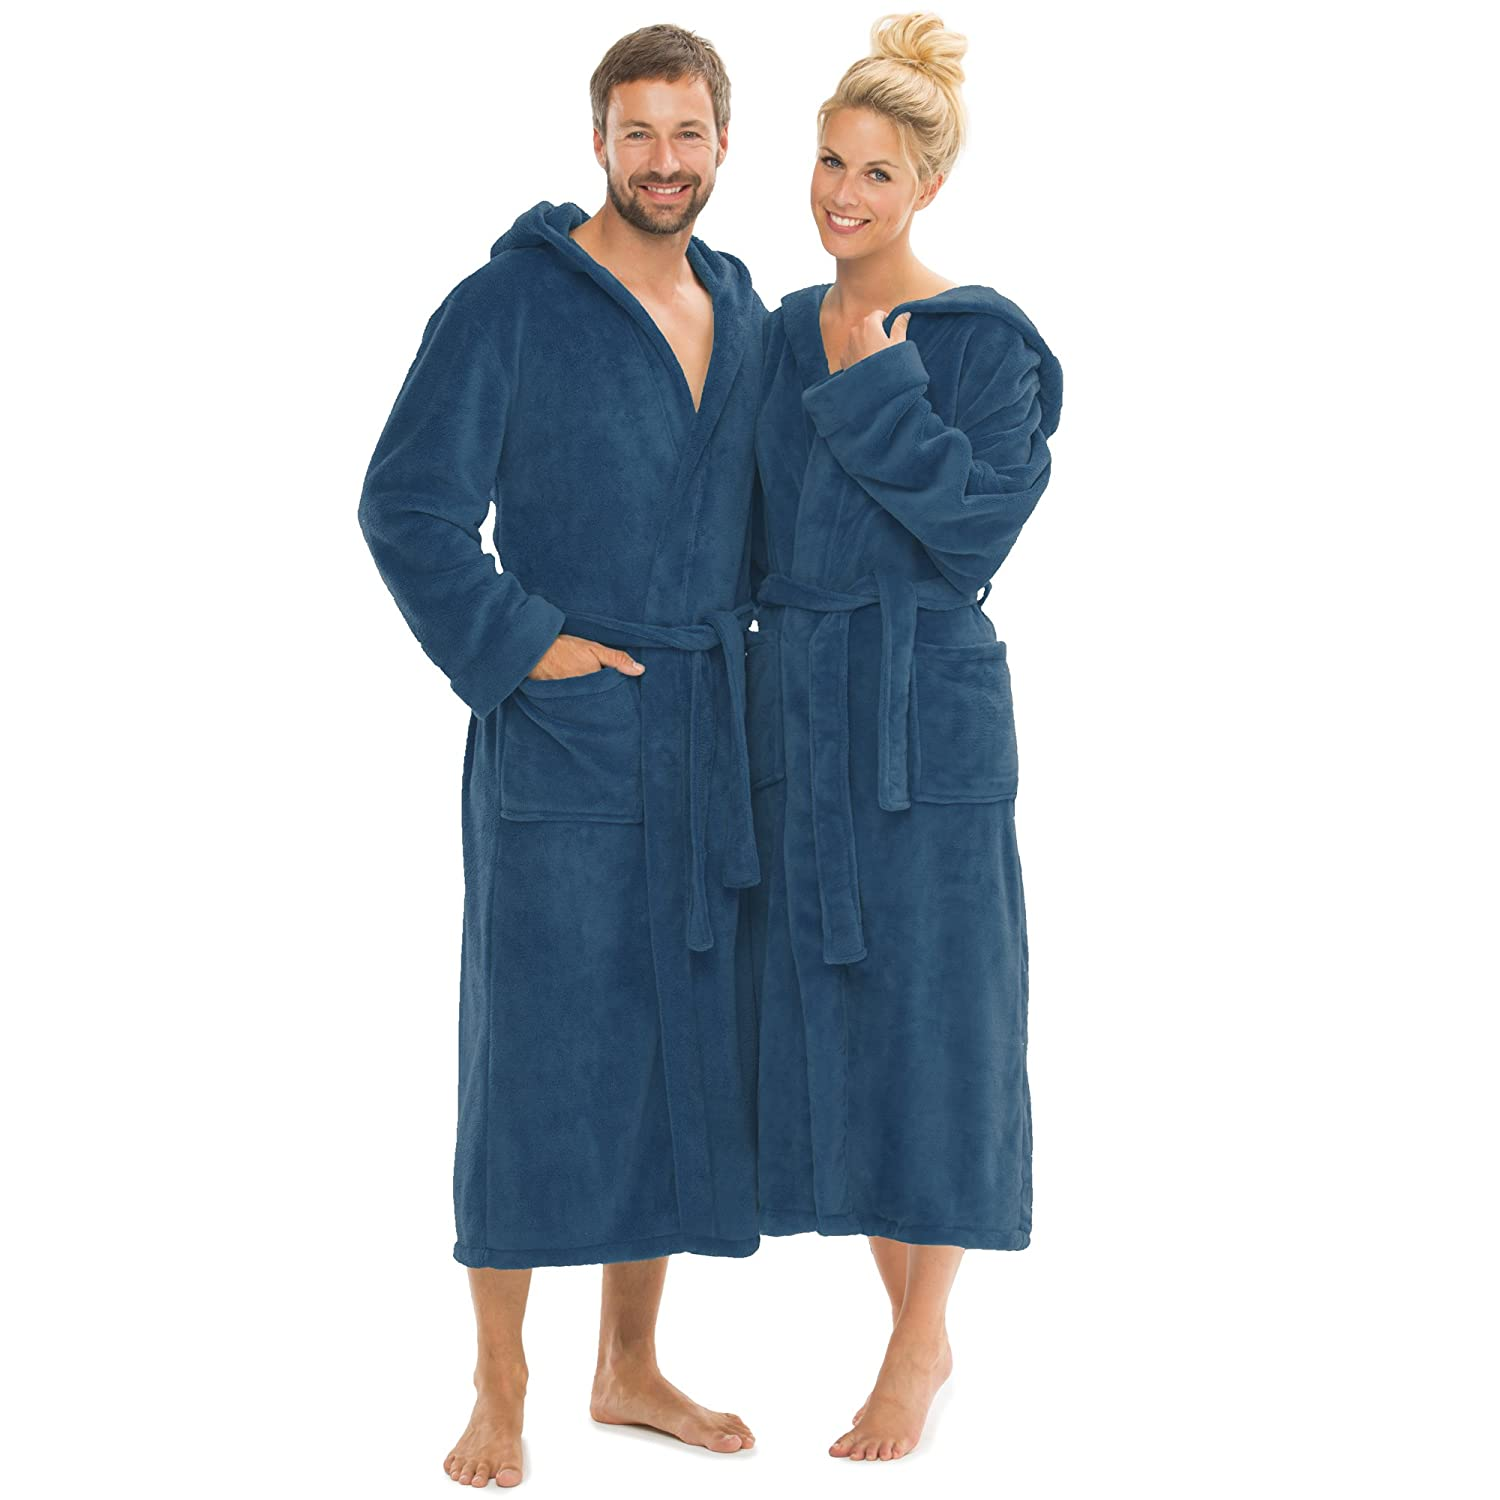 CelinaTex Hooded bathrobe, women and men's cuddly robe, soft and super fluffy, coral fleece saunas, hooded, swimwear, Microfibre, Black, S CEMTF 5000465